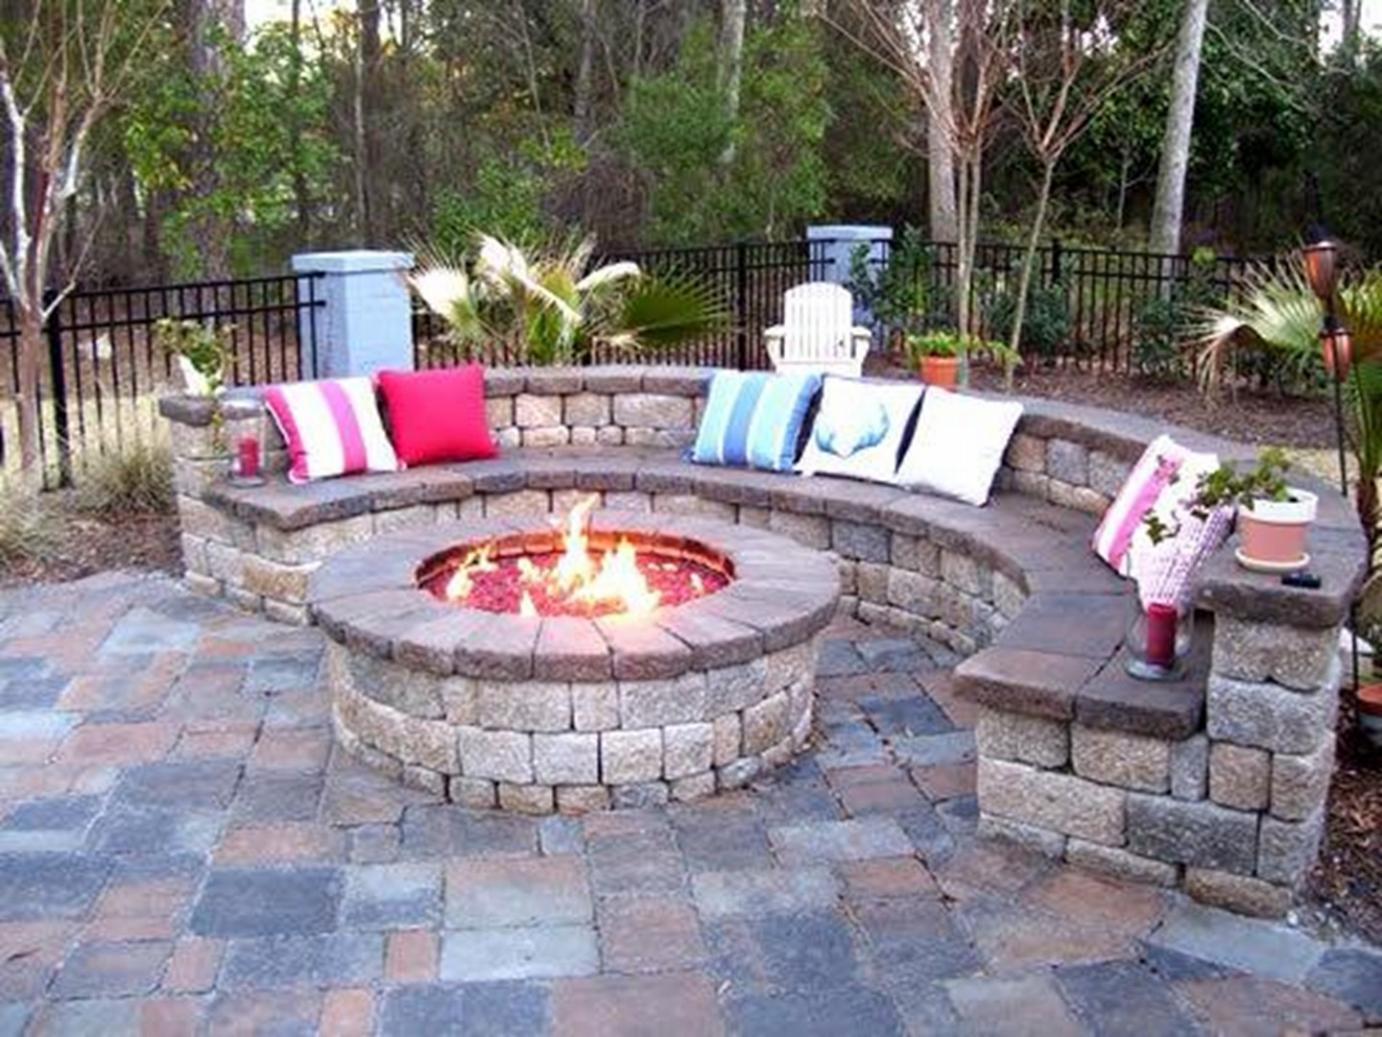 Backyard Designs Ideas best 25 garden design ideas only on pinterest landscape design pertaining to small backyard design ideas Backyard Fire Pit Design Backyard Fire Pit Ideas Landscaping